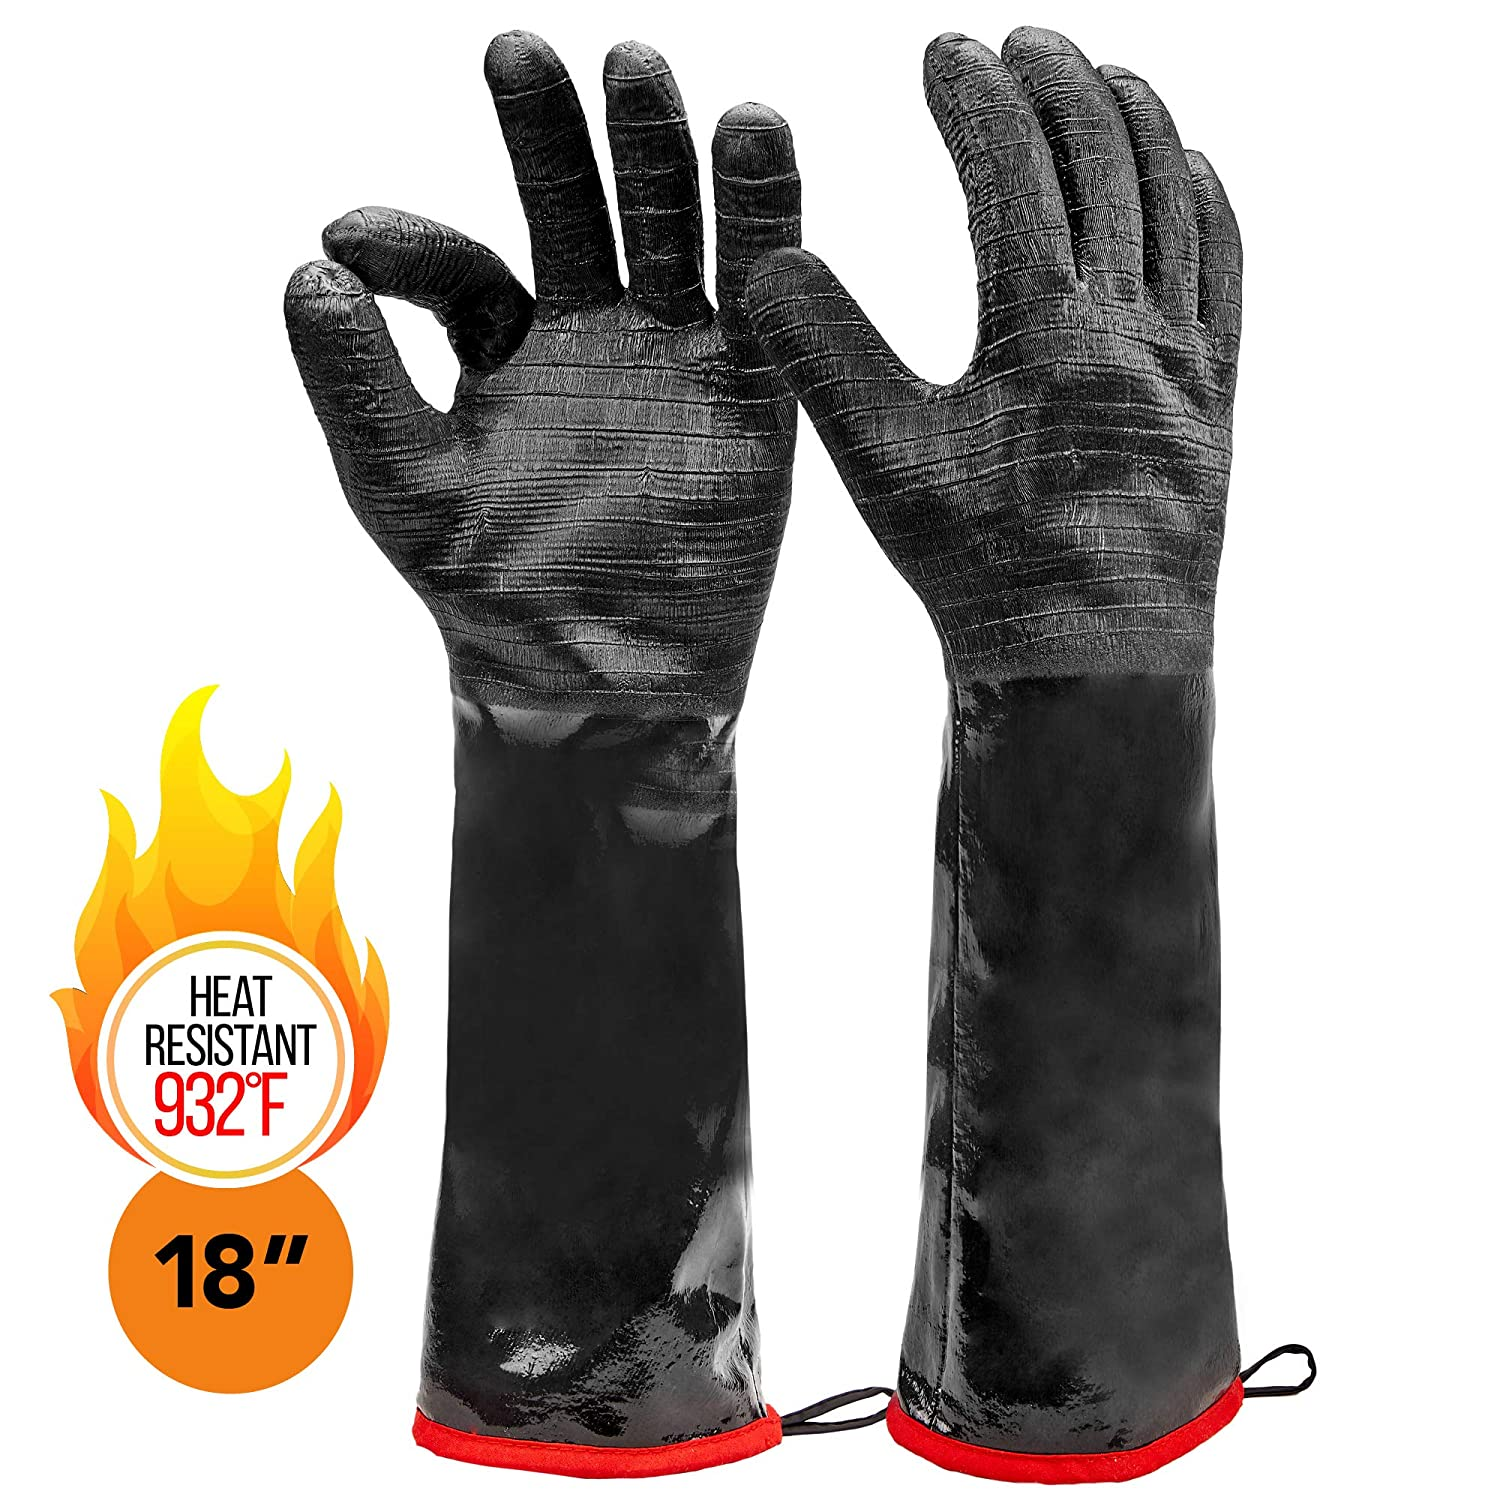 "Heatsistance Heat Resistant BBQ Gloves,Grill Gloves 18"" Long Sleeve, Extra Large - Textured Grip to Handle Wet, Greasy or Oily Foods - Fire and Food Safe Oven Mitts for Smoker, Grills and Barbecue"